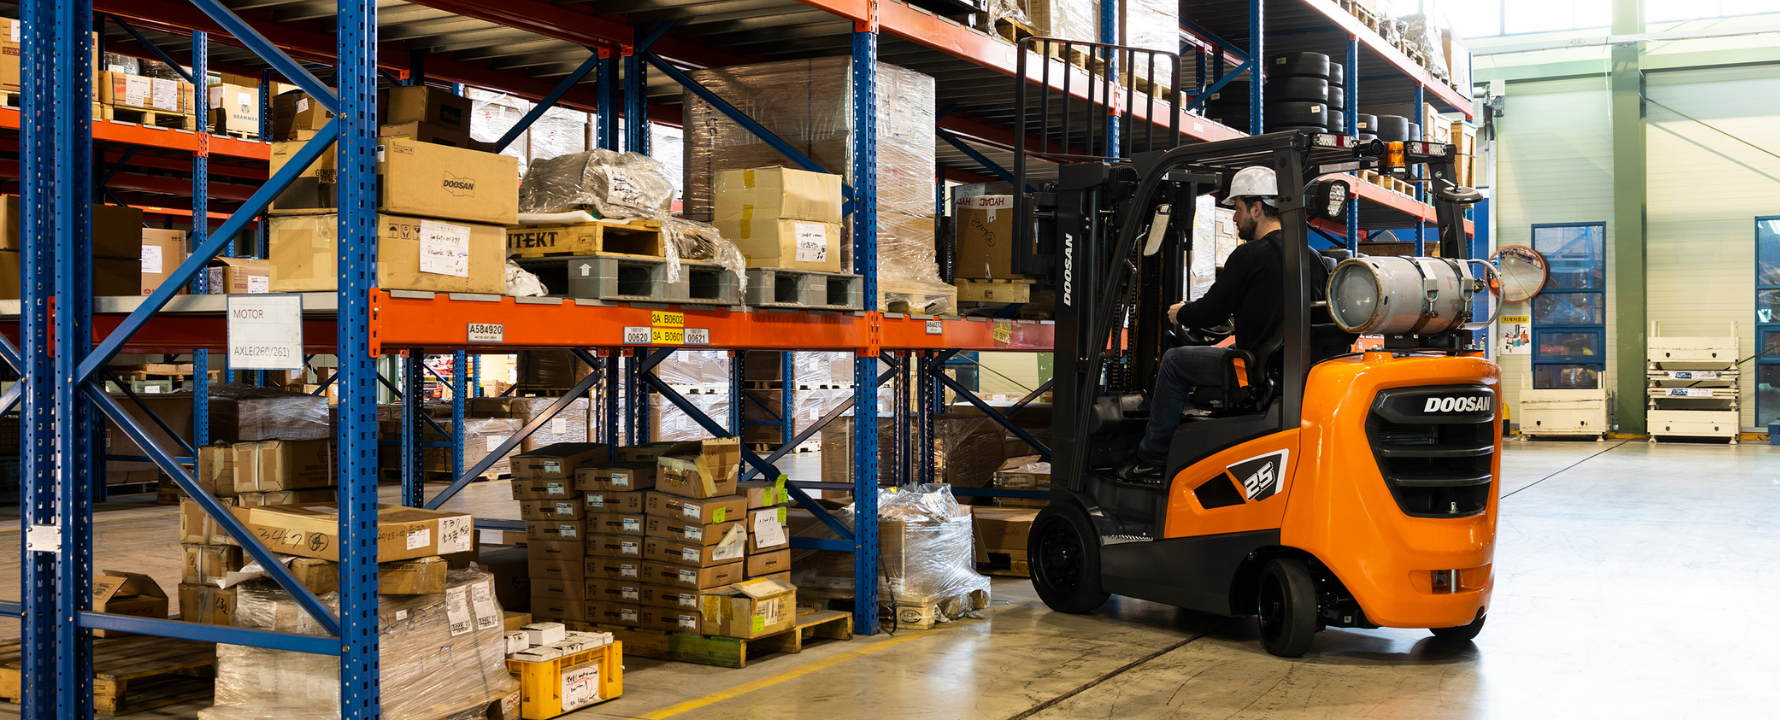 Average Lifespan of Diesel, Electric and Gas Forklifts & Reach Trucks